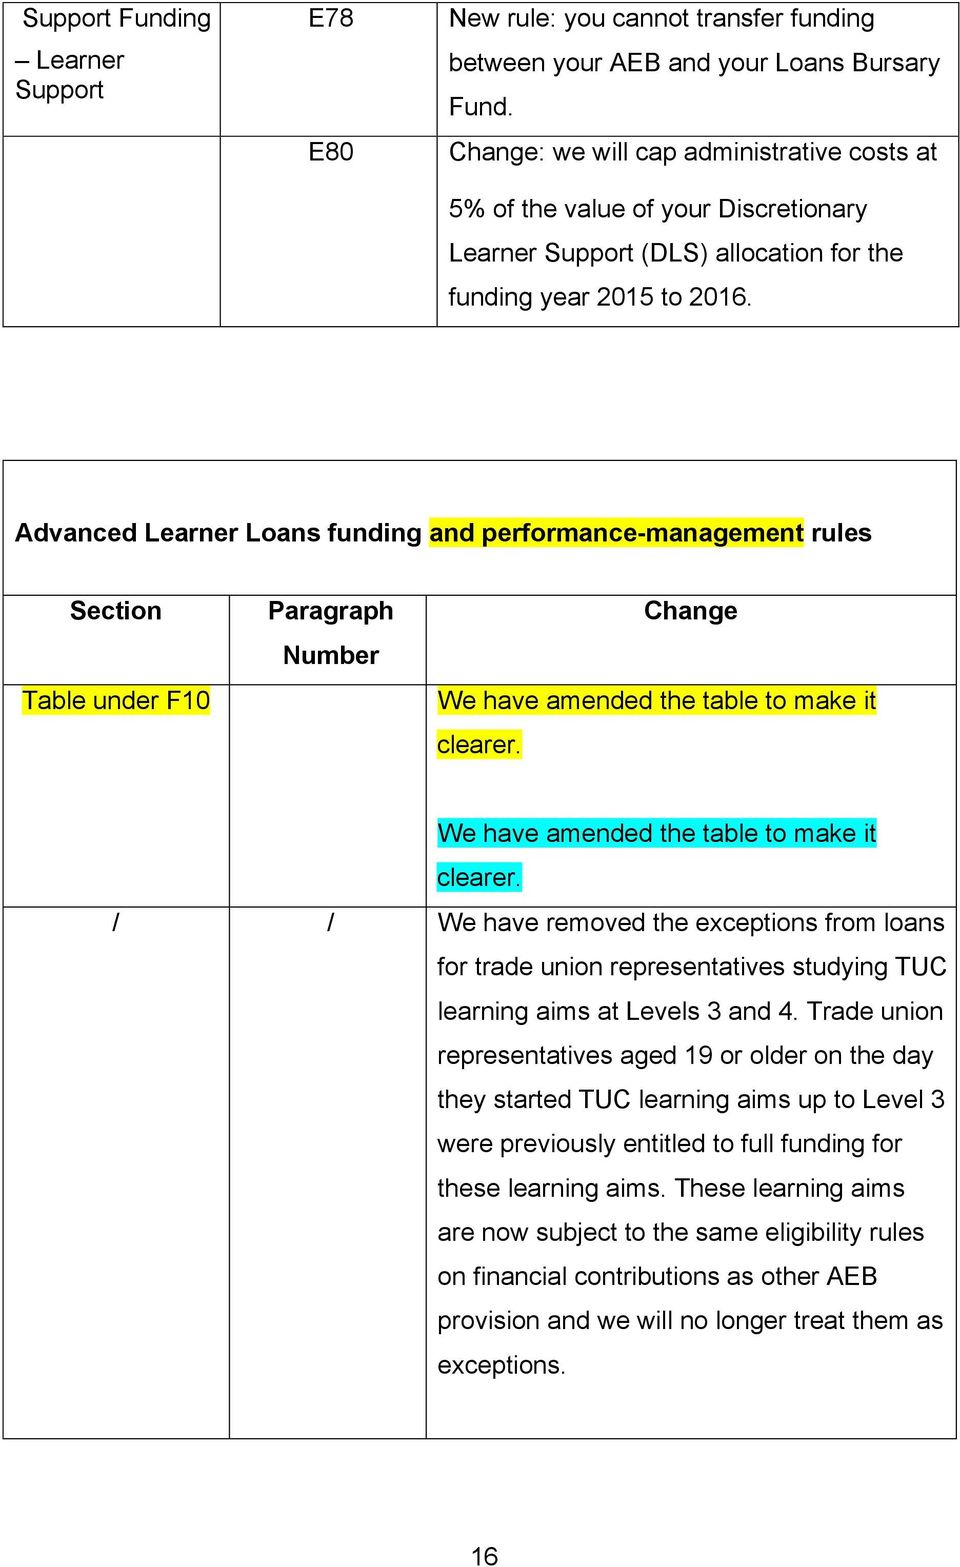 Advanced Learner Loans funding and performance-management rules Section Table under F10 Paragraph Number Change We have amended the table to make it clearer.